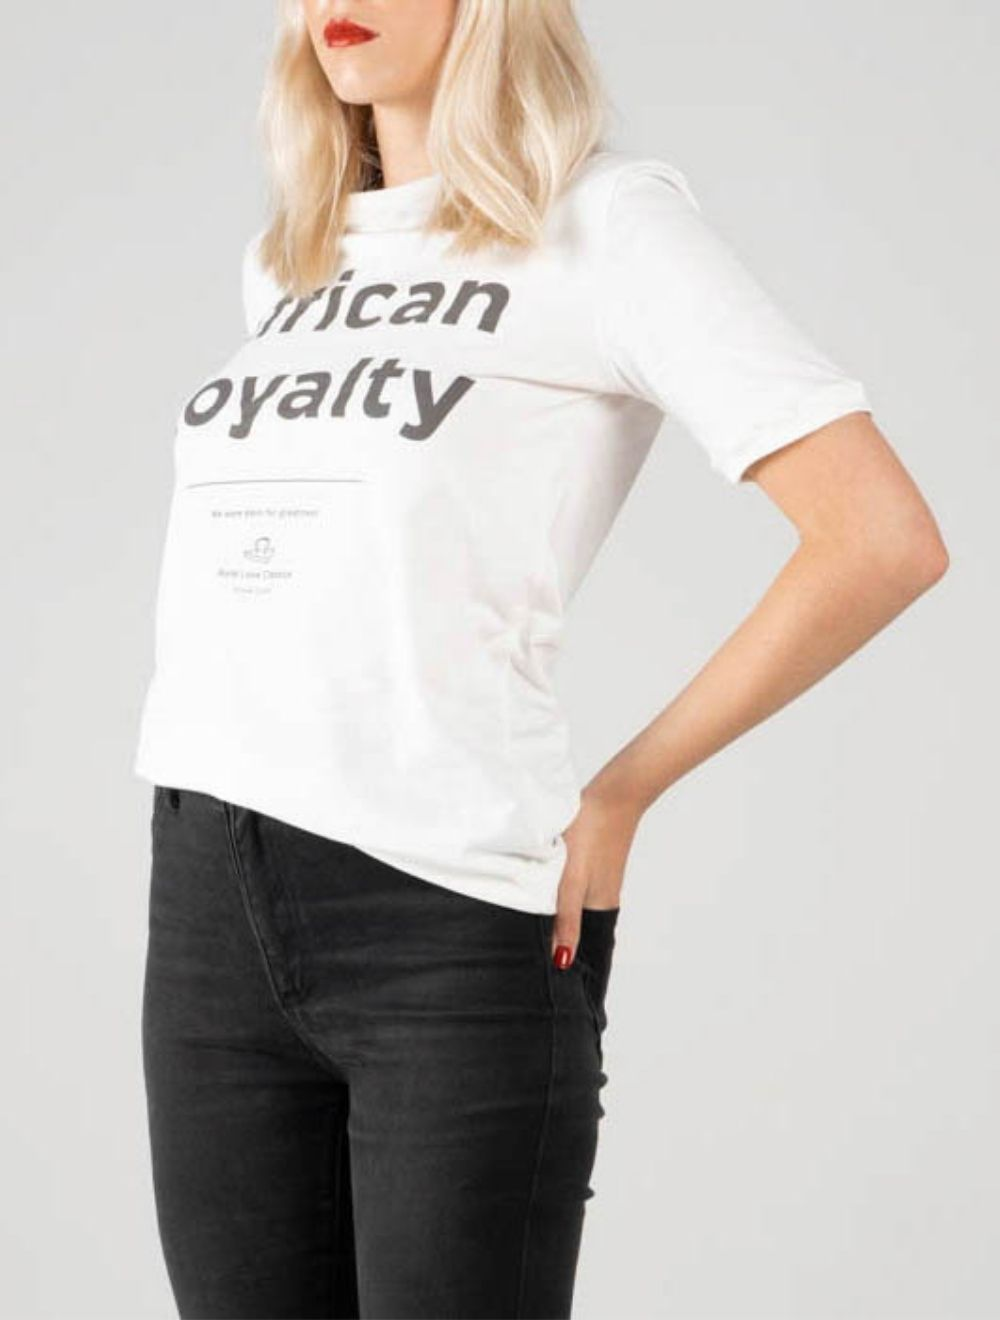 AFRICAN ROYALTY (White) – SIDE